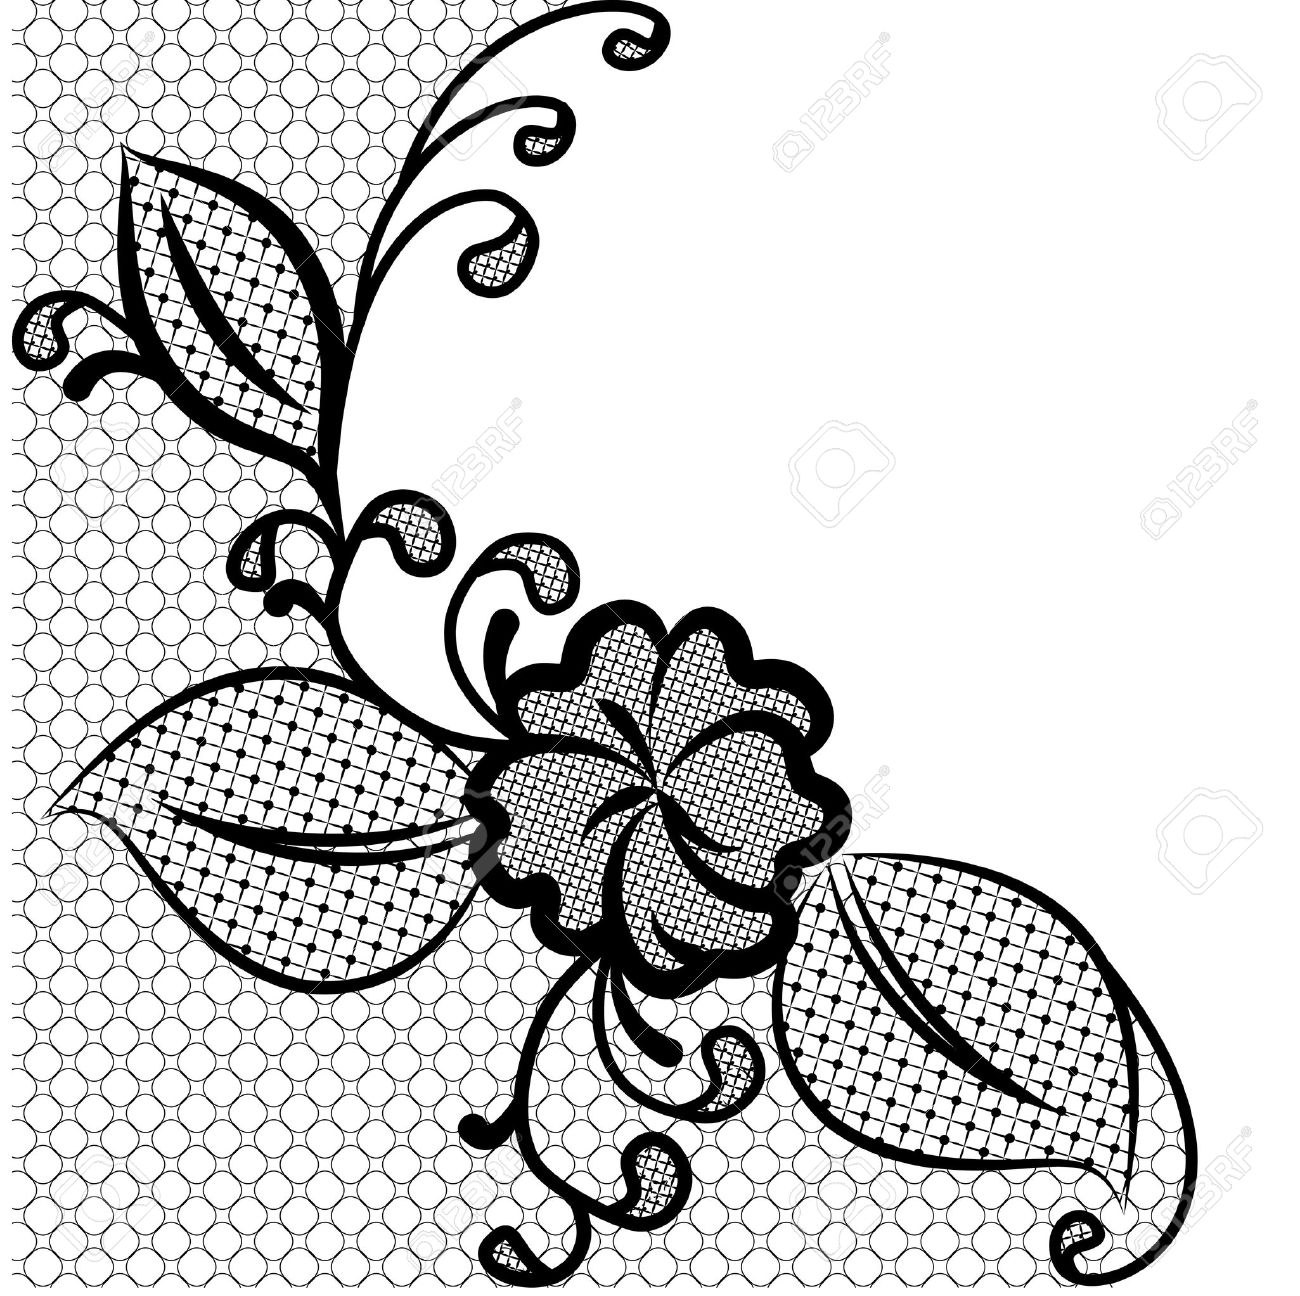 lace corner black and white background with space for text can rh 123rf com